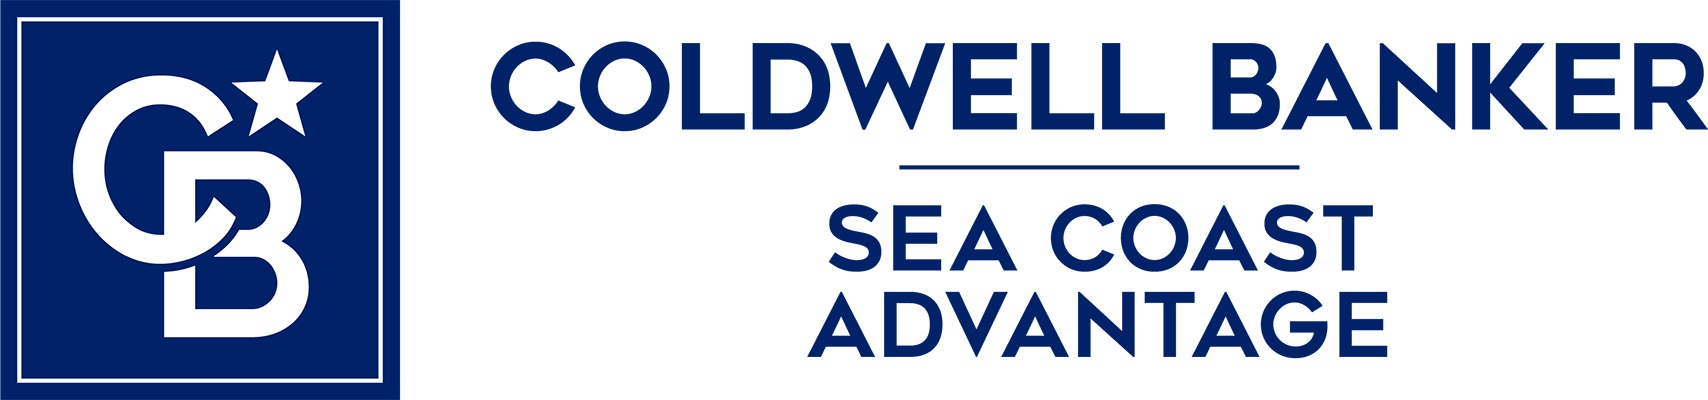 Tiffany Howard - Coldwell Banker Sea Coast Advantage Realty Logo